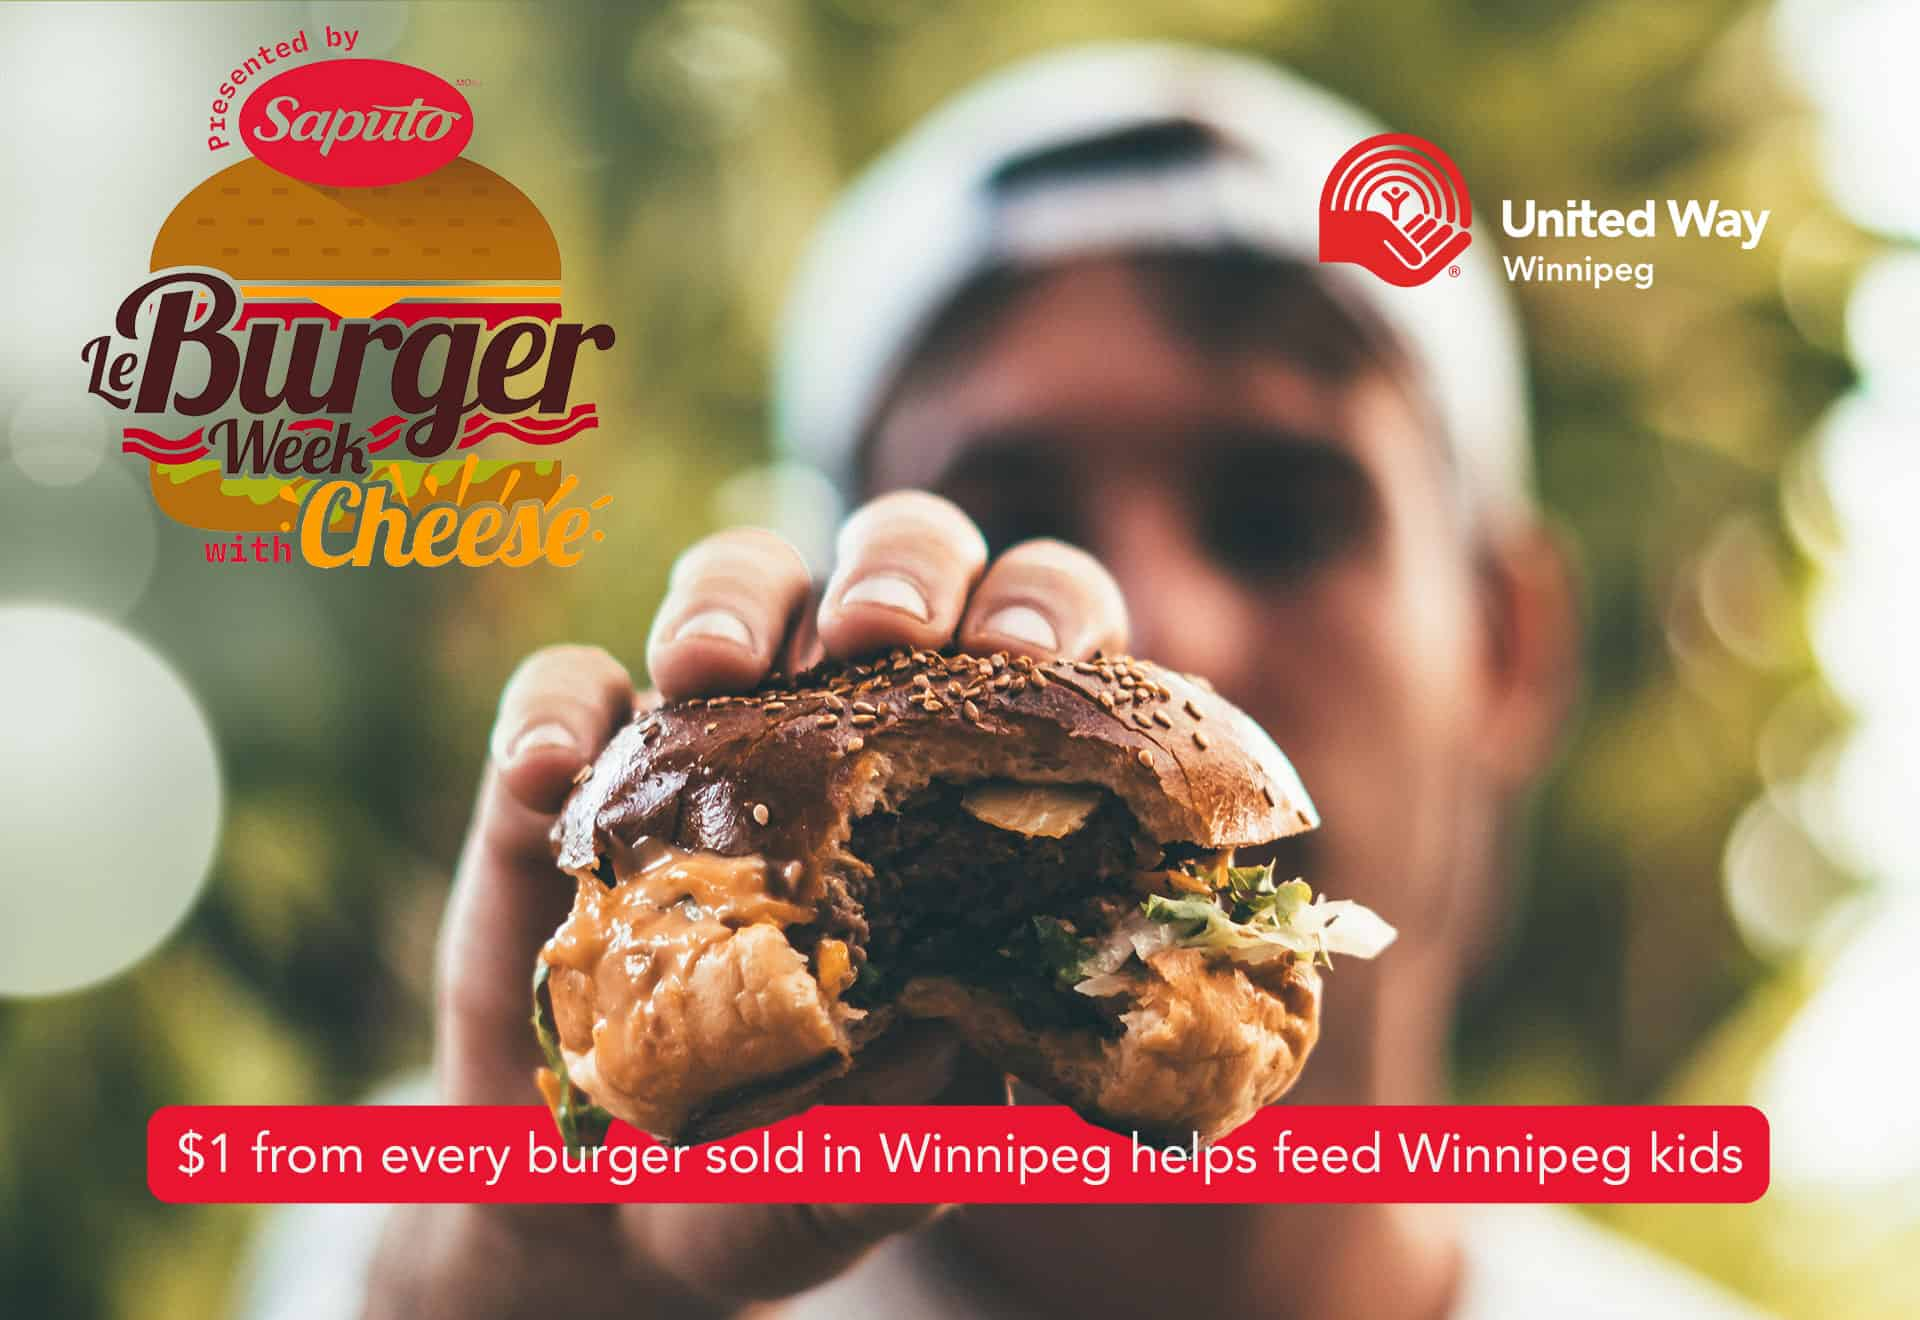 $1 from every Le Burger Week with Cheese burger sold in Winnipeg will help feed Winnipeg kids!